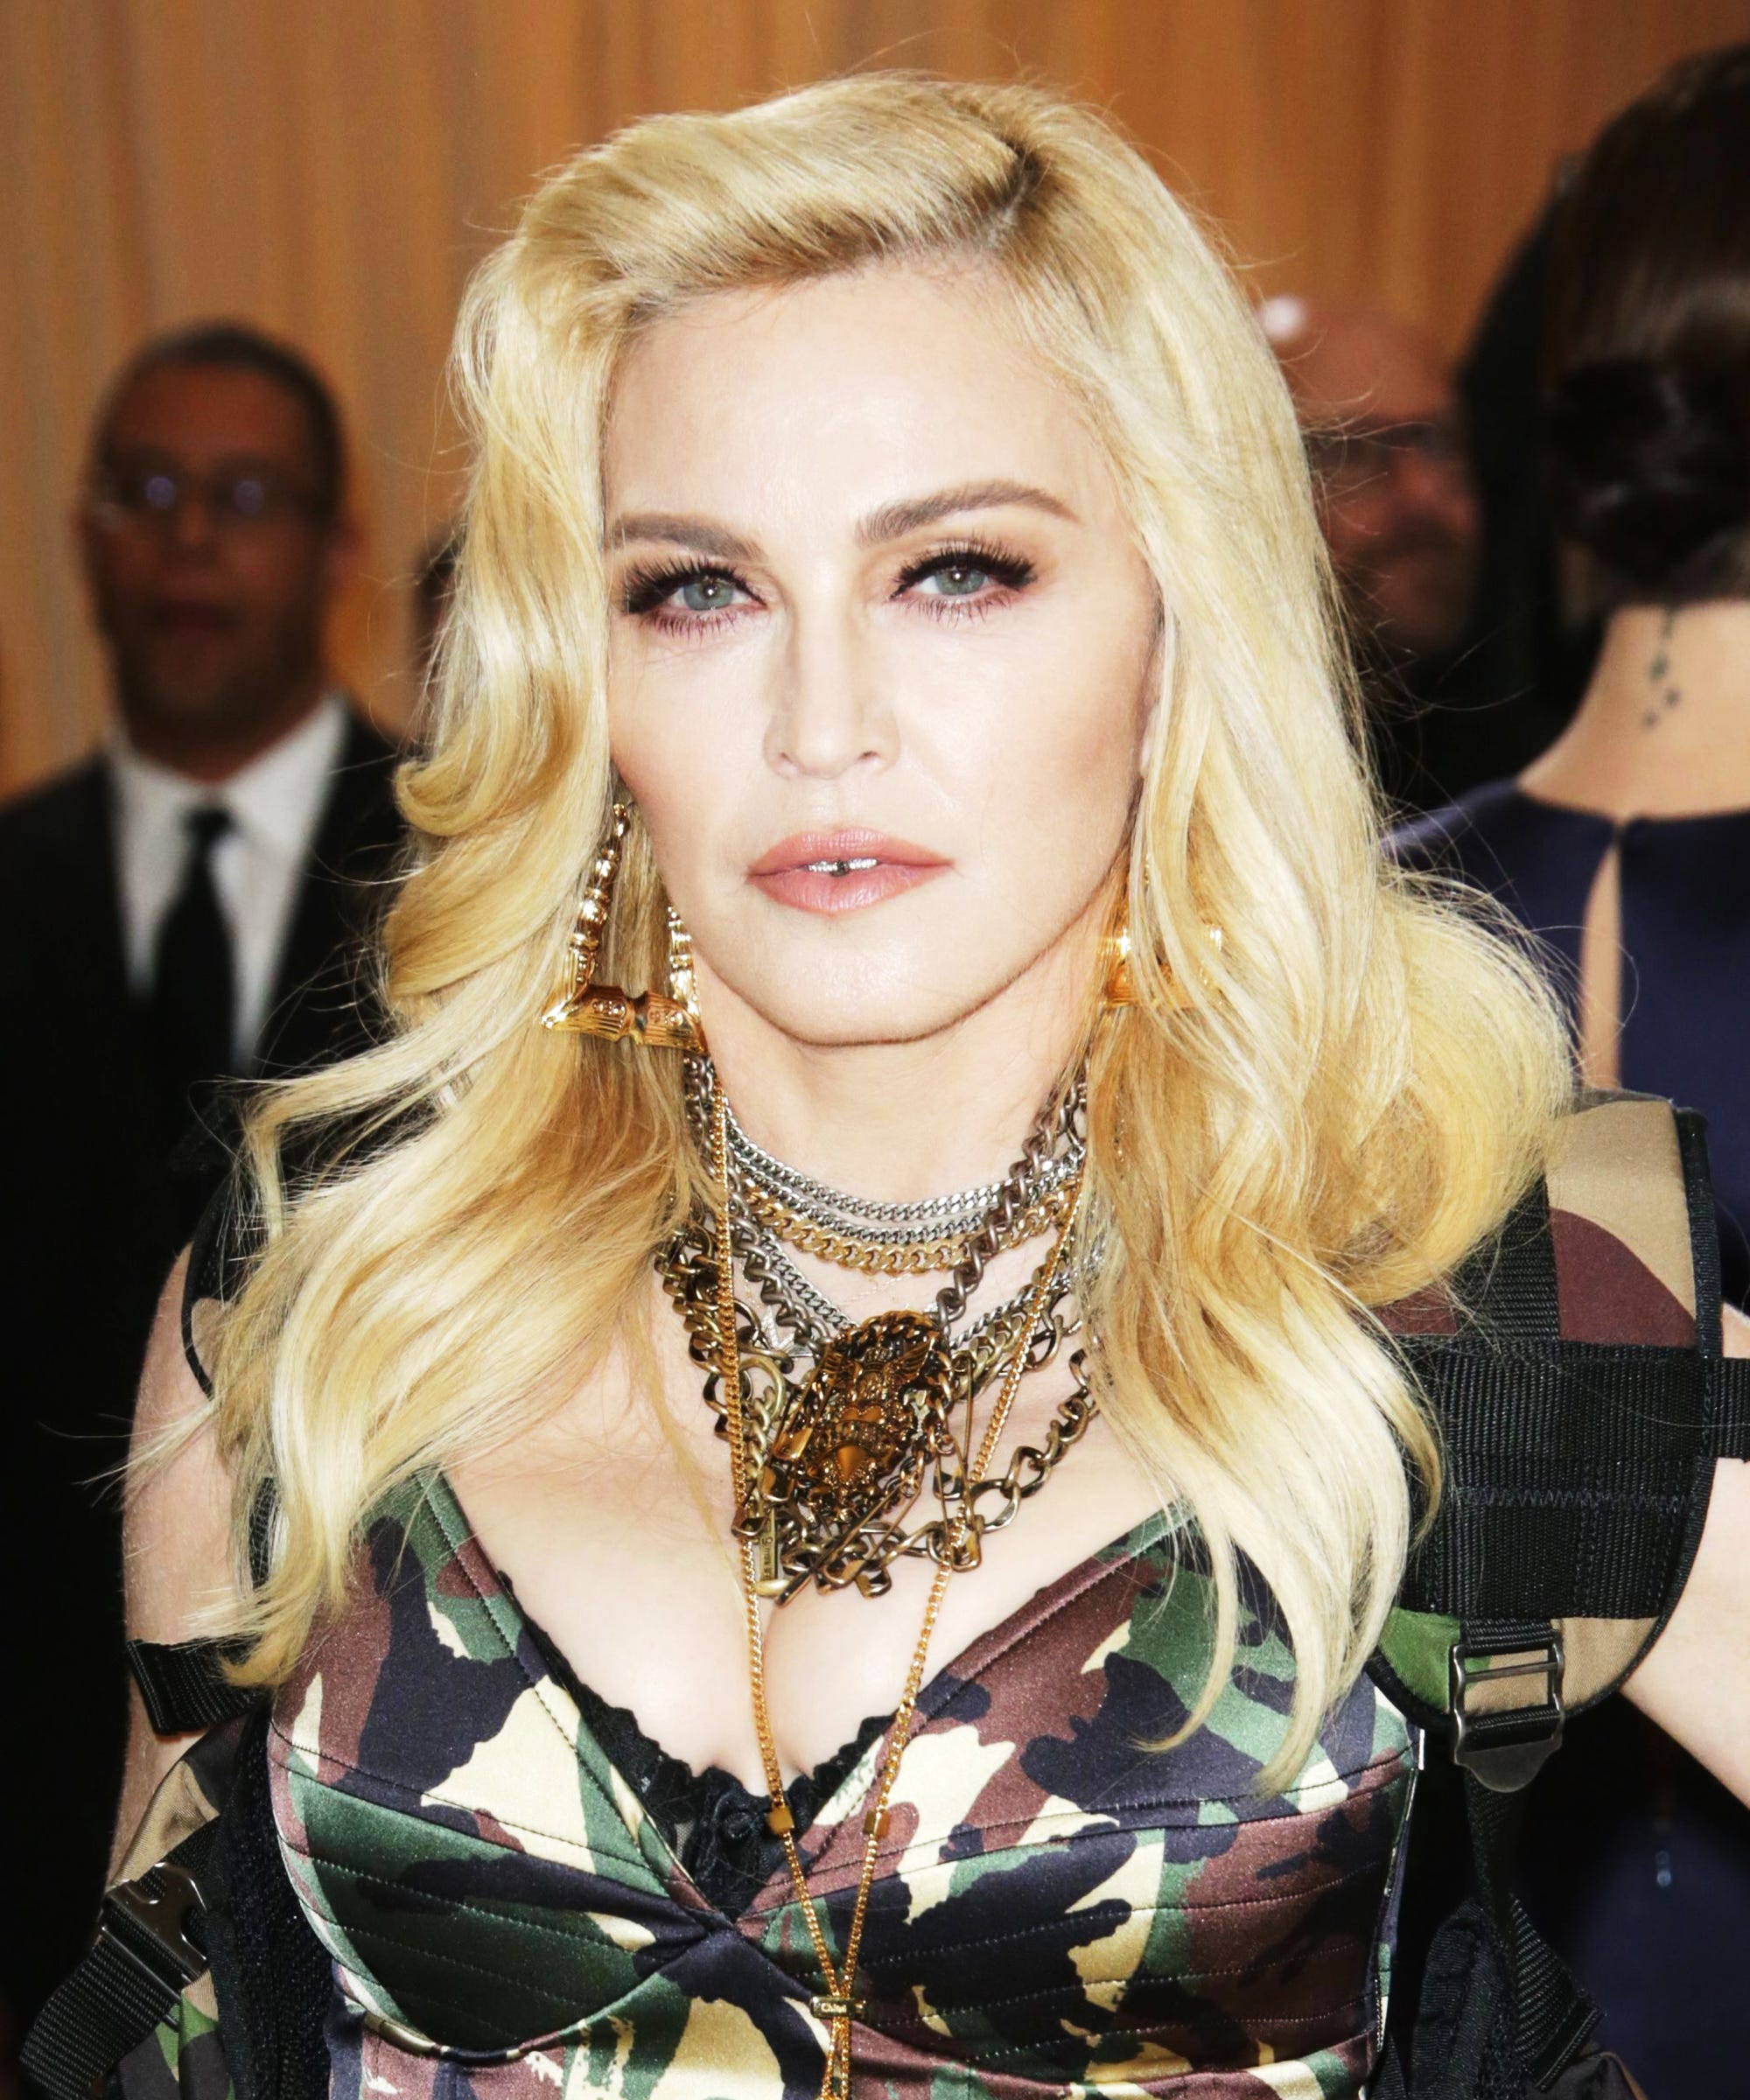 Everything We Know About That Madonna Biopic She Doesn't Want To Happen